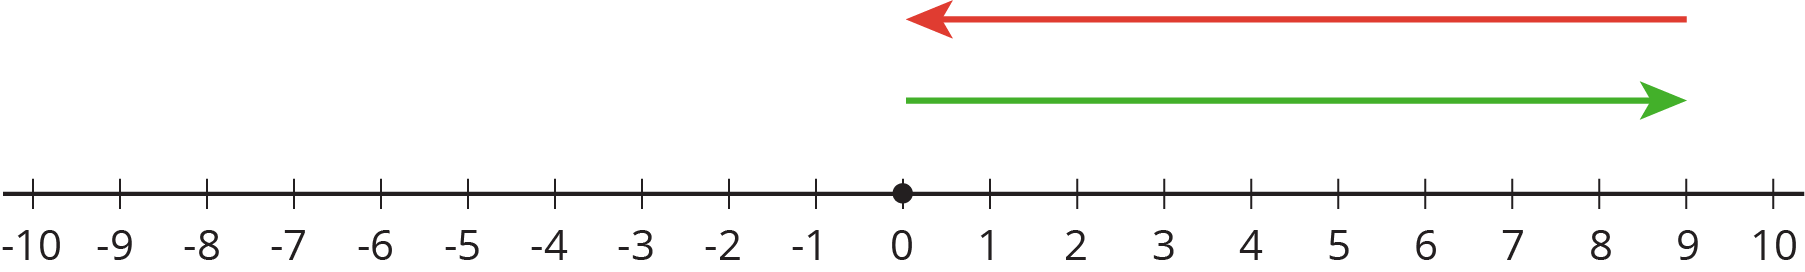 A number line with the numbers negative 10 through 10 indicated. An arrow starts at 0, points to the right, and ends at 9. A second arrow starts at 9, points to the left, and ends at 0. there is a solid dot indicated at 0.